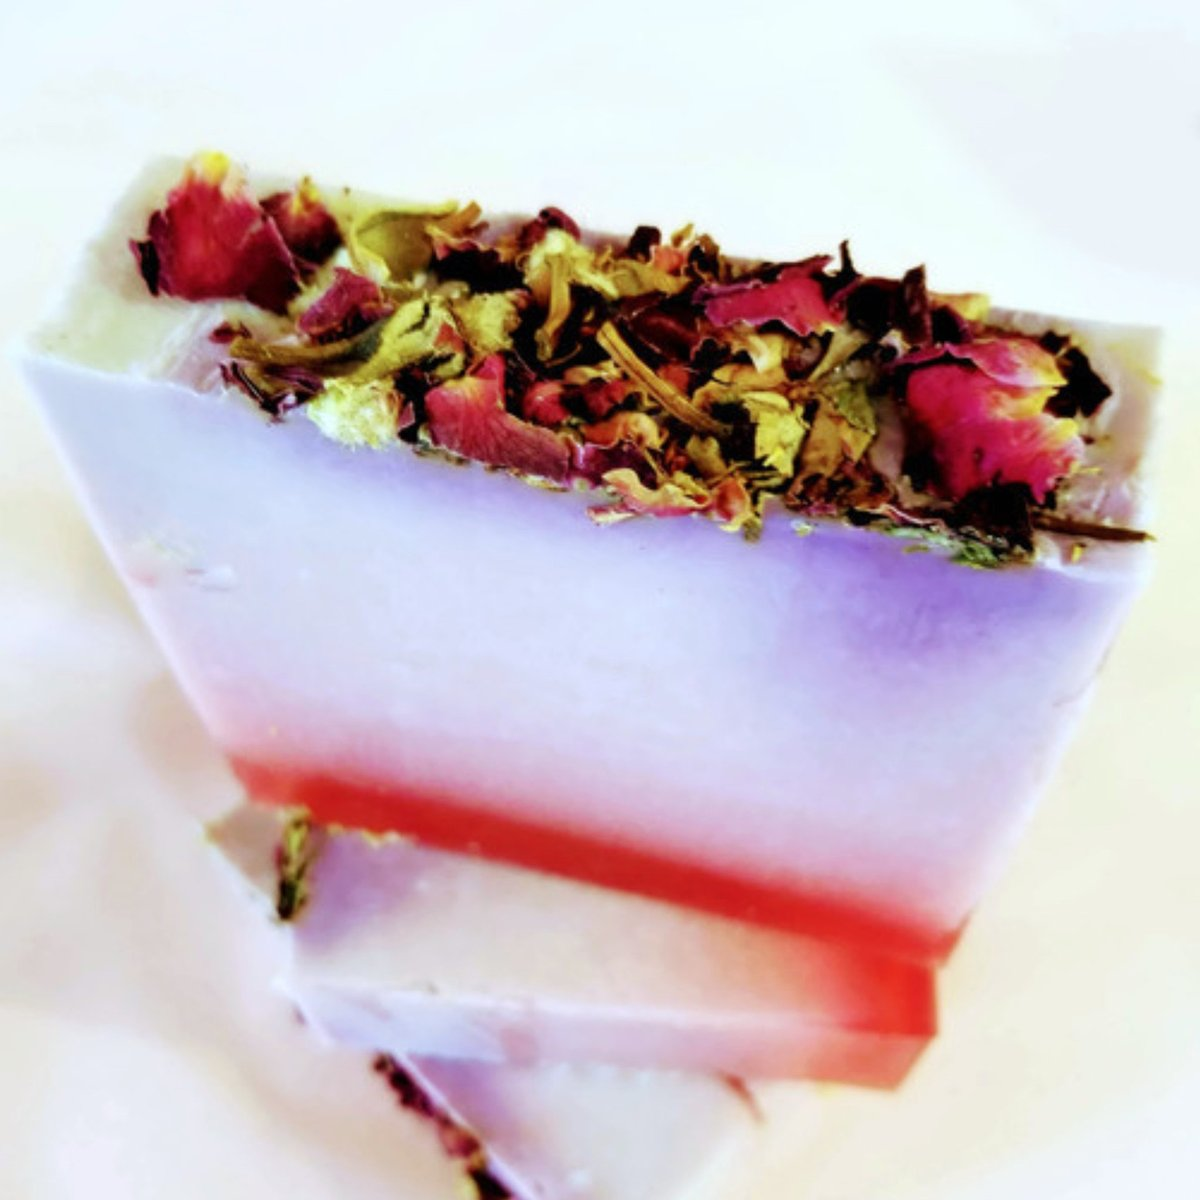 Lilac Rose Soap, Lilac Soap, Rose Soap, Soap Gift, Natural Soap, Rose Petal Soap, Mother's Day Gift, Best Rose Soap, Bath and Body Gift  #HandmadeSoap #DeShawnMarie #Soap #Etsy #Handmade #Vegan #Gifts #NaturalSoap